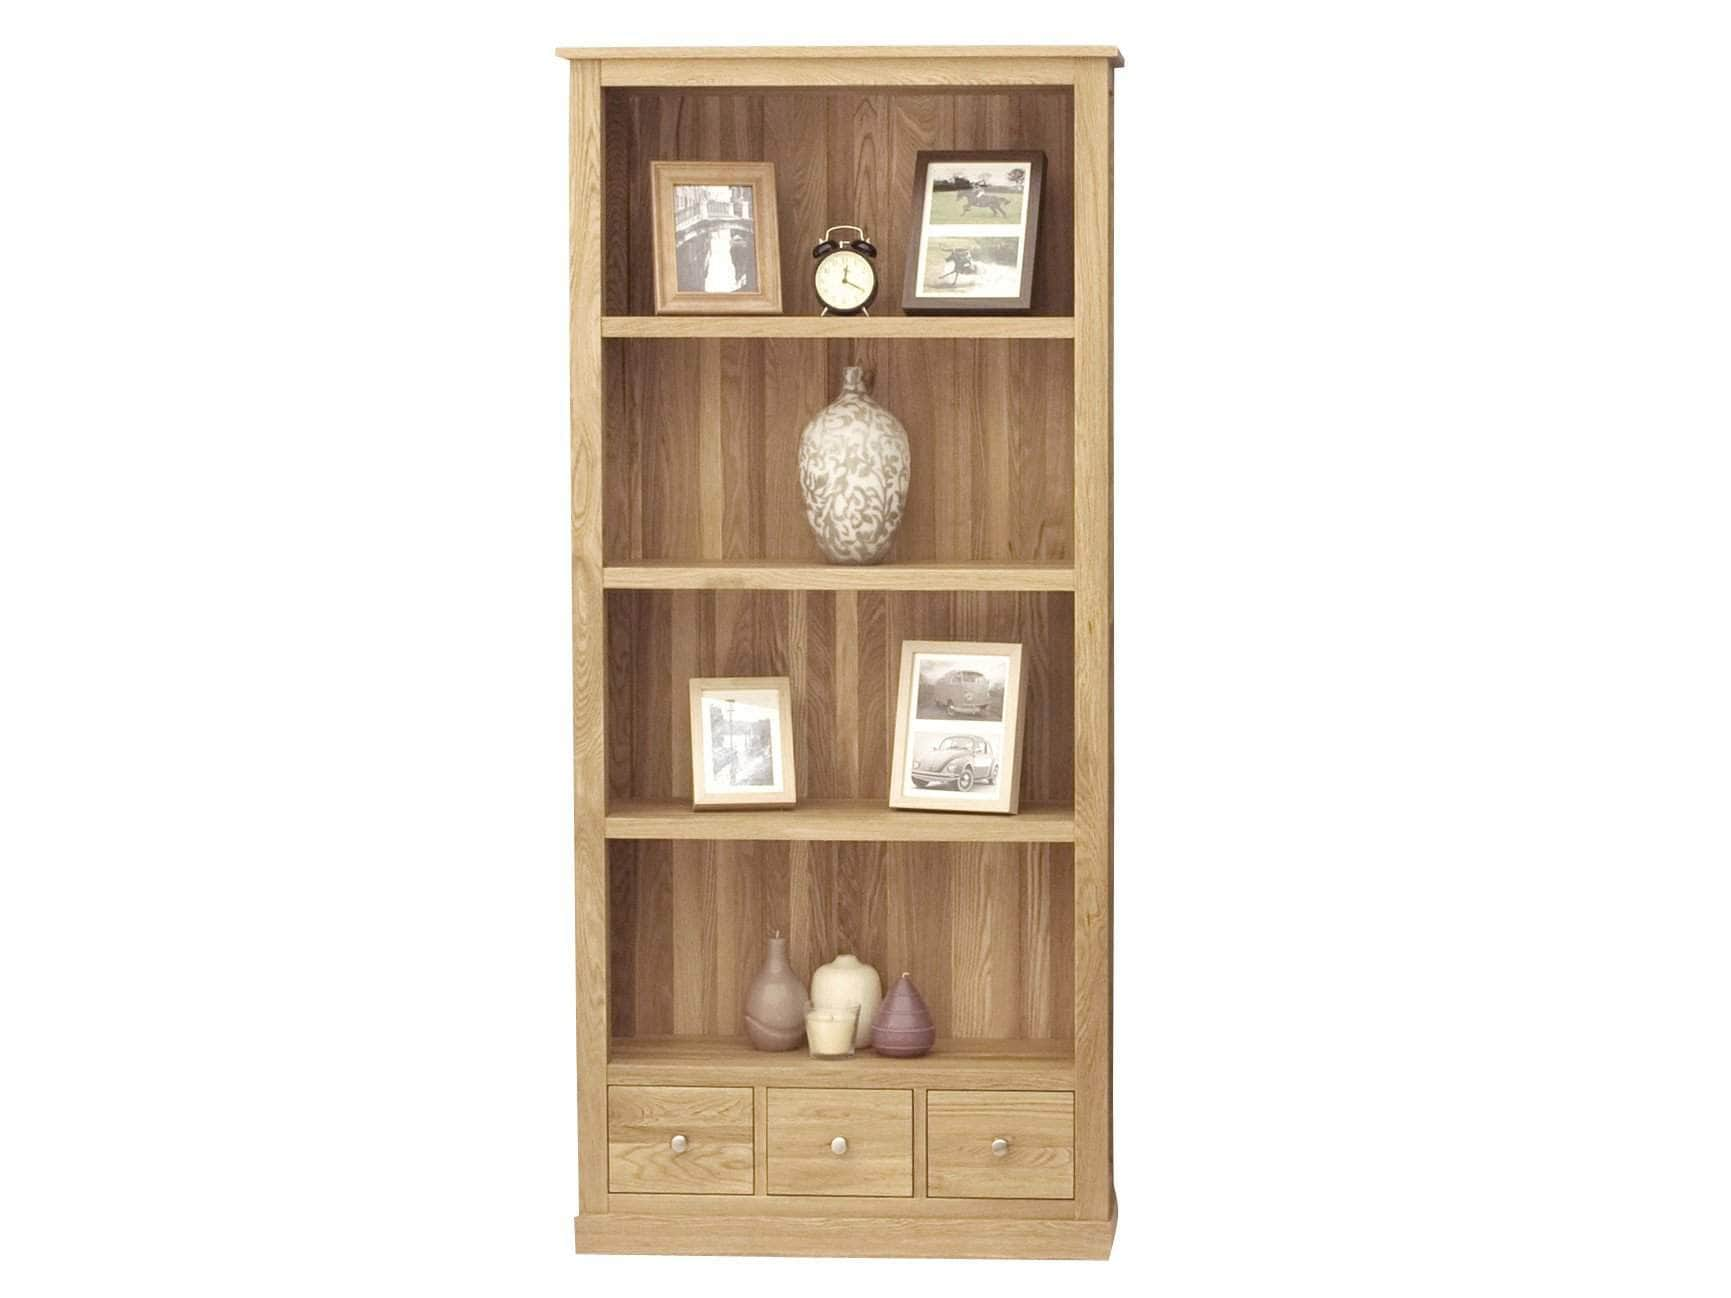 Large solid oak bookcase with four shelves and three small drawers at the base